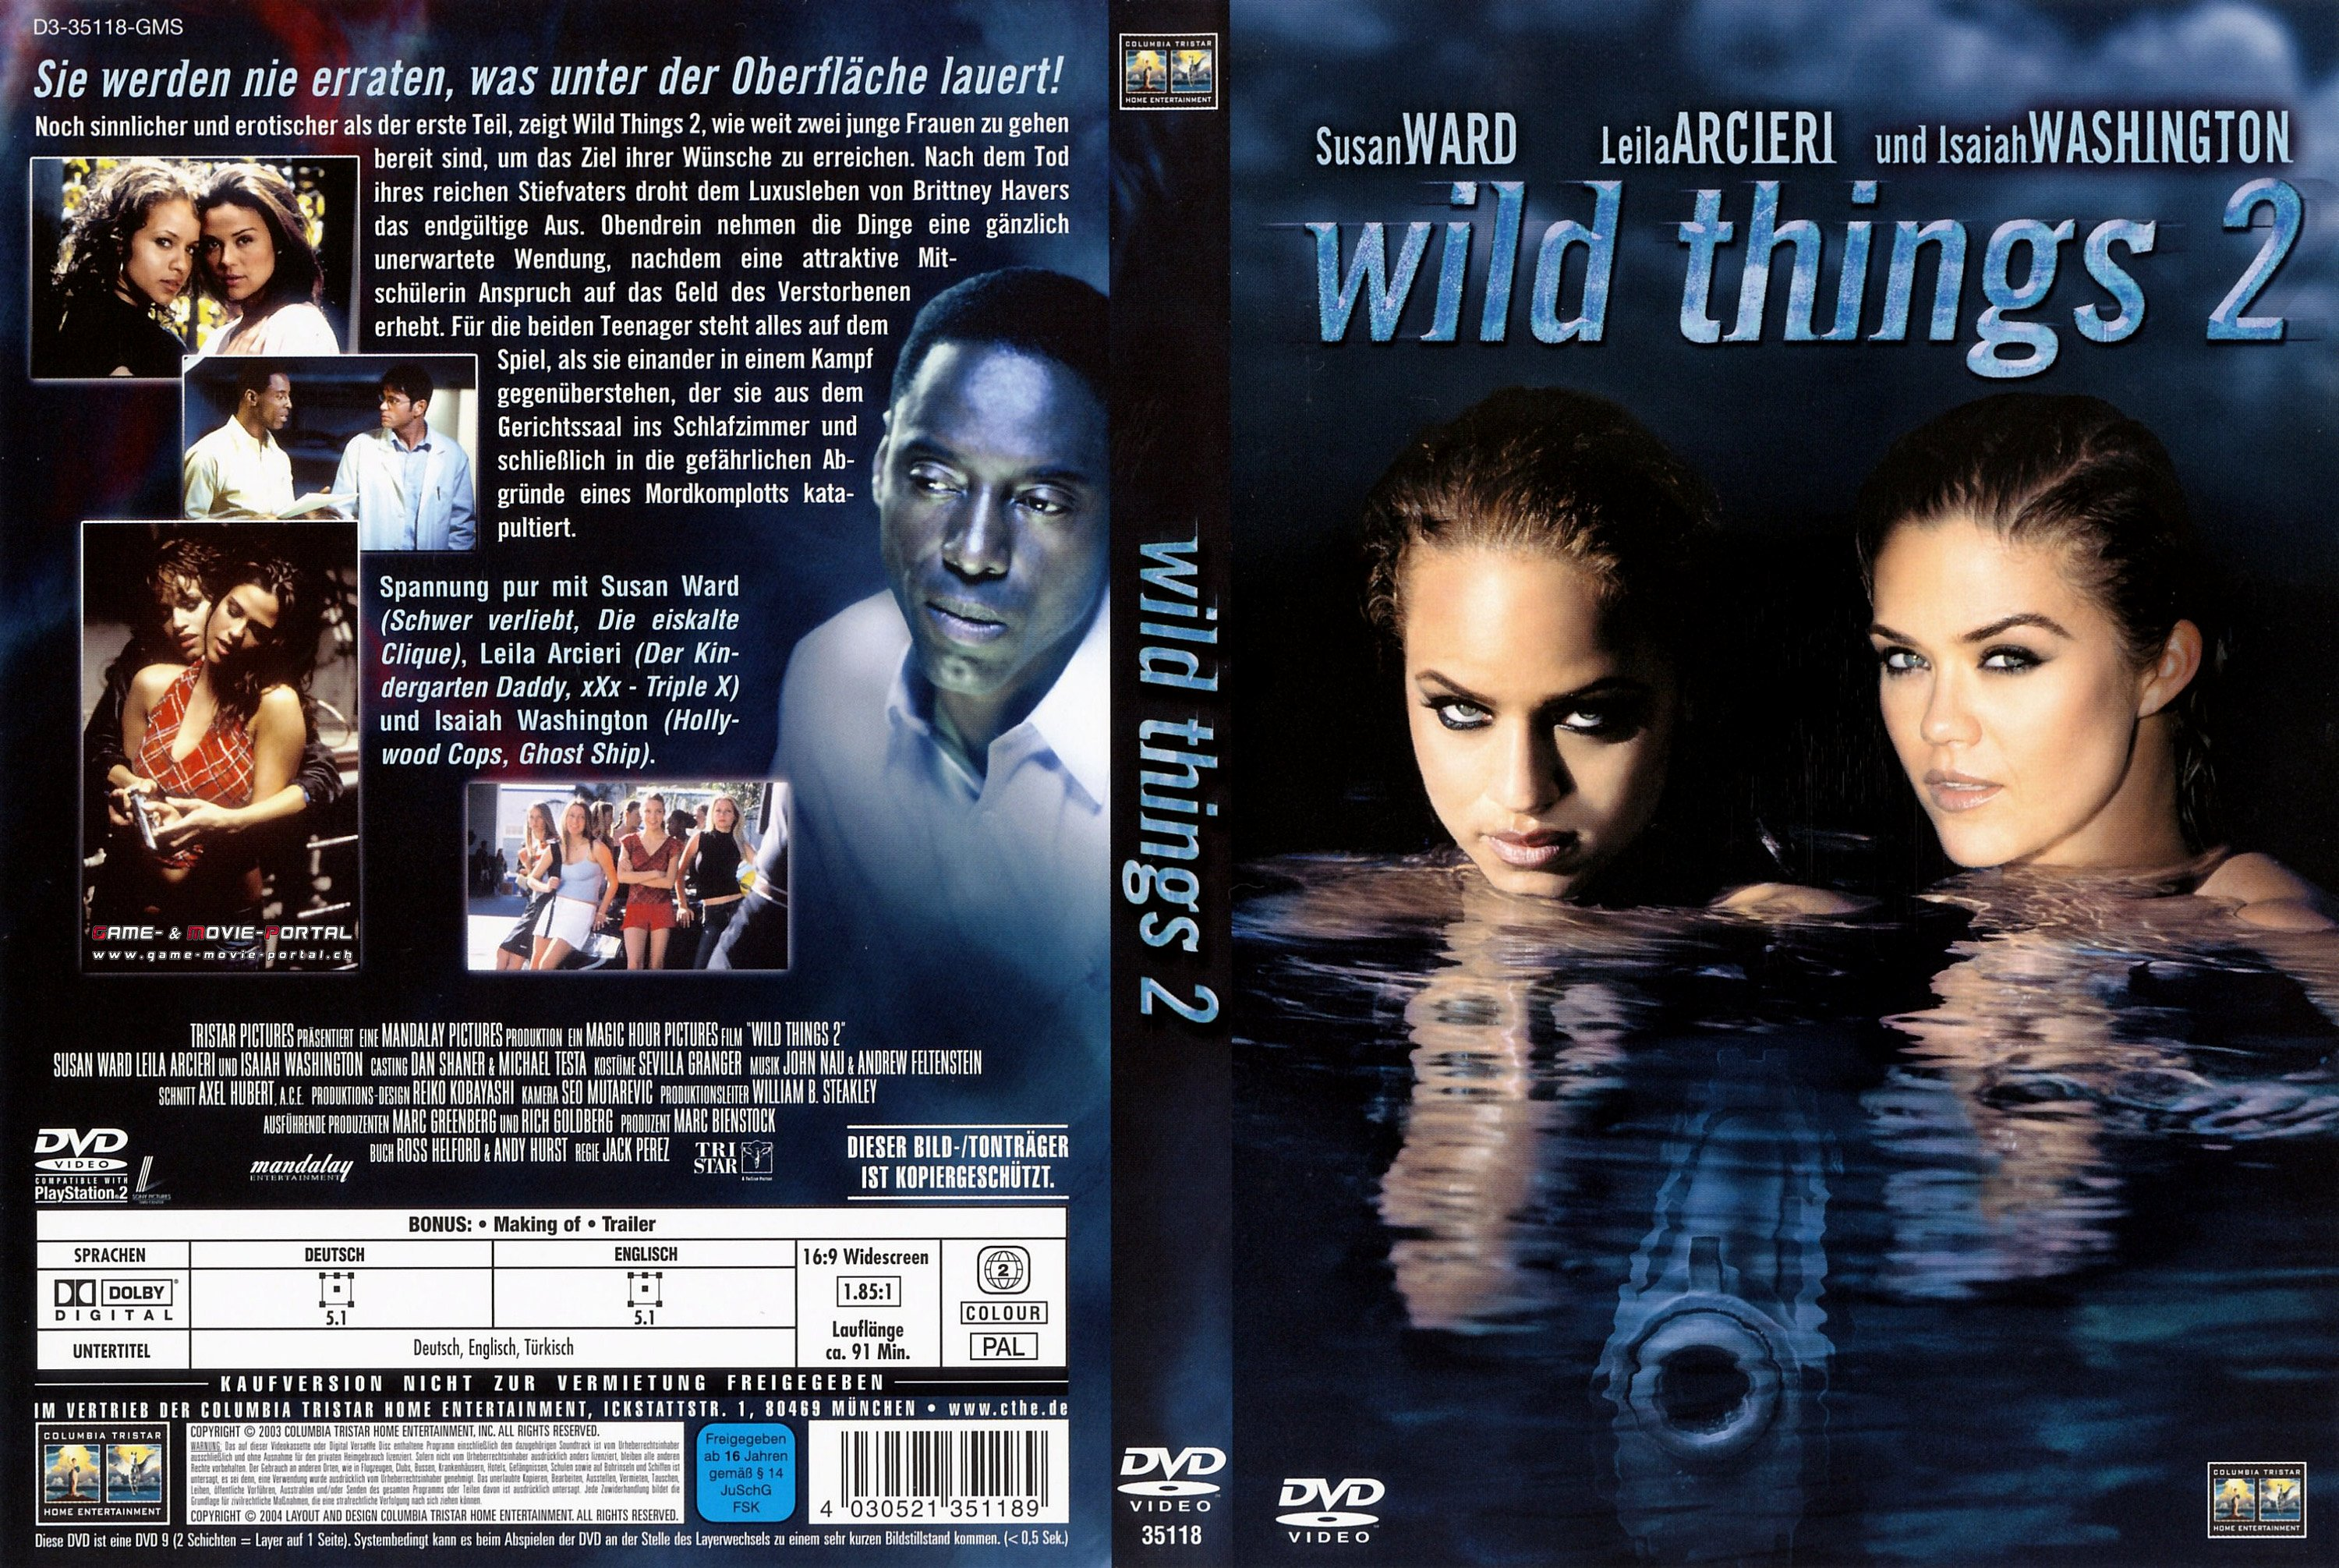 Wild Things 2 german dvd cover | German DVD Covers